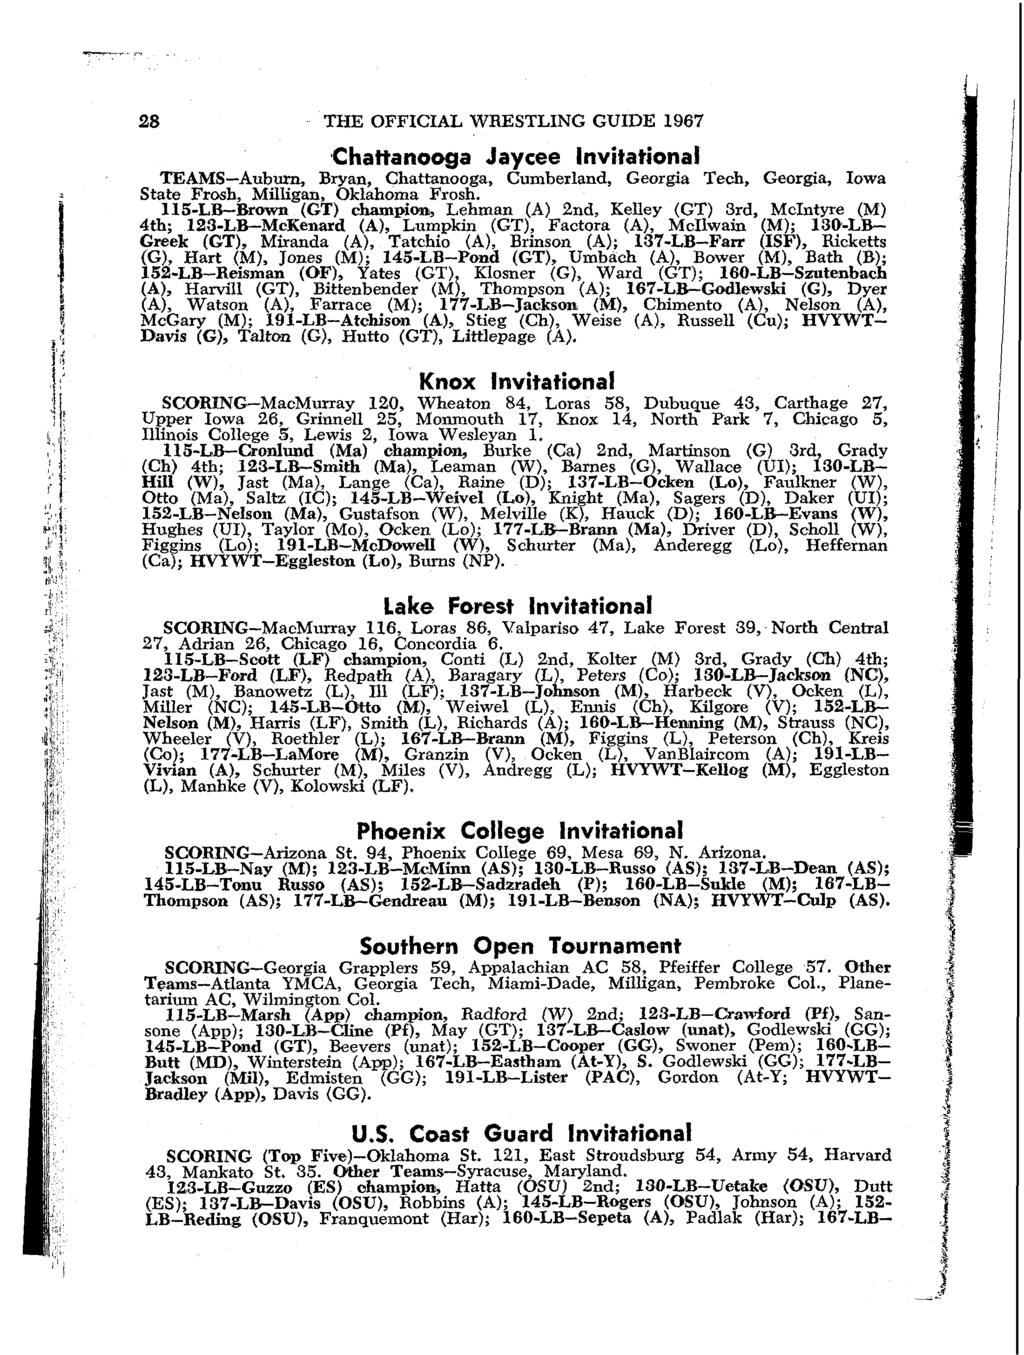 28 THE OFFICIAL WRESTLING GUIDE 1967,Chattanooga Jaycee Invitational TEAMS-Auburn Bryan ~hattanoo~a, cumberland, Georgia Tech, Georgia, Iowa State Frosh ~illigan 0klhoma Frosh, ll5-~~--brown (G$)